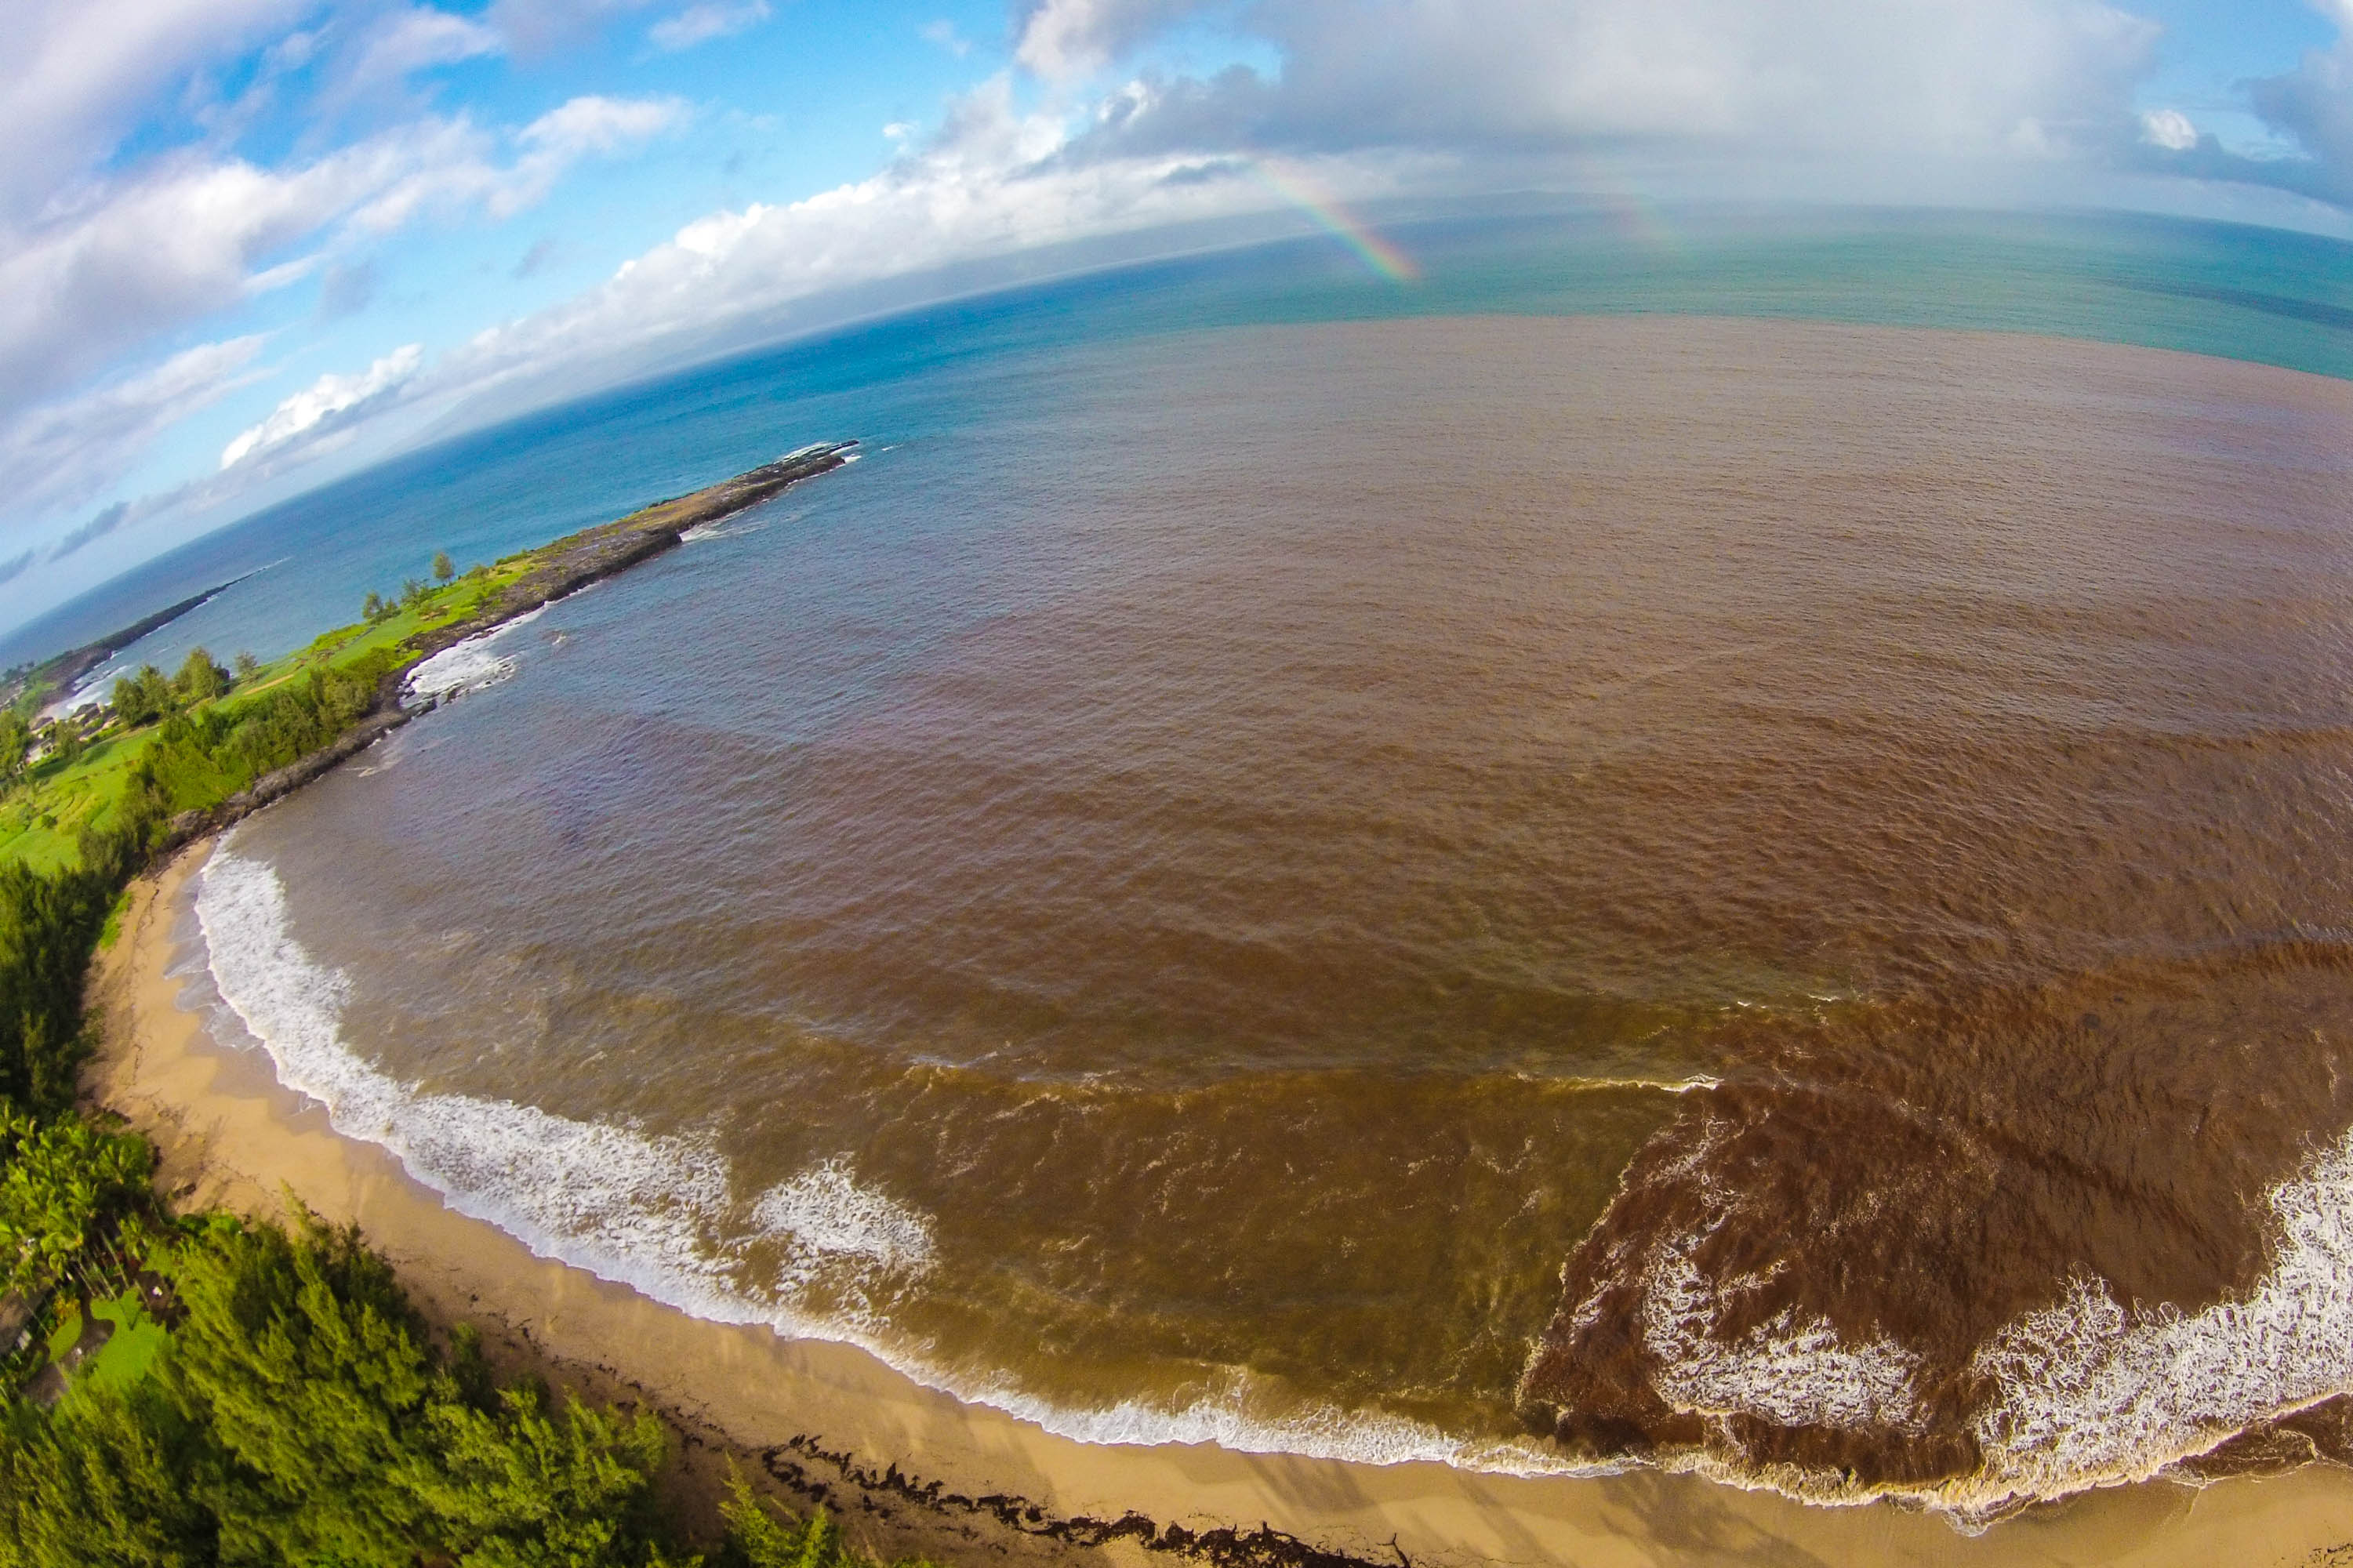 NOW ENTIRE ISLAND!Brown Water Advisory has been issued at Wailea Beach on Maui on 1/14/1